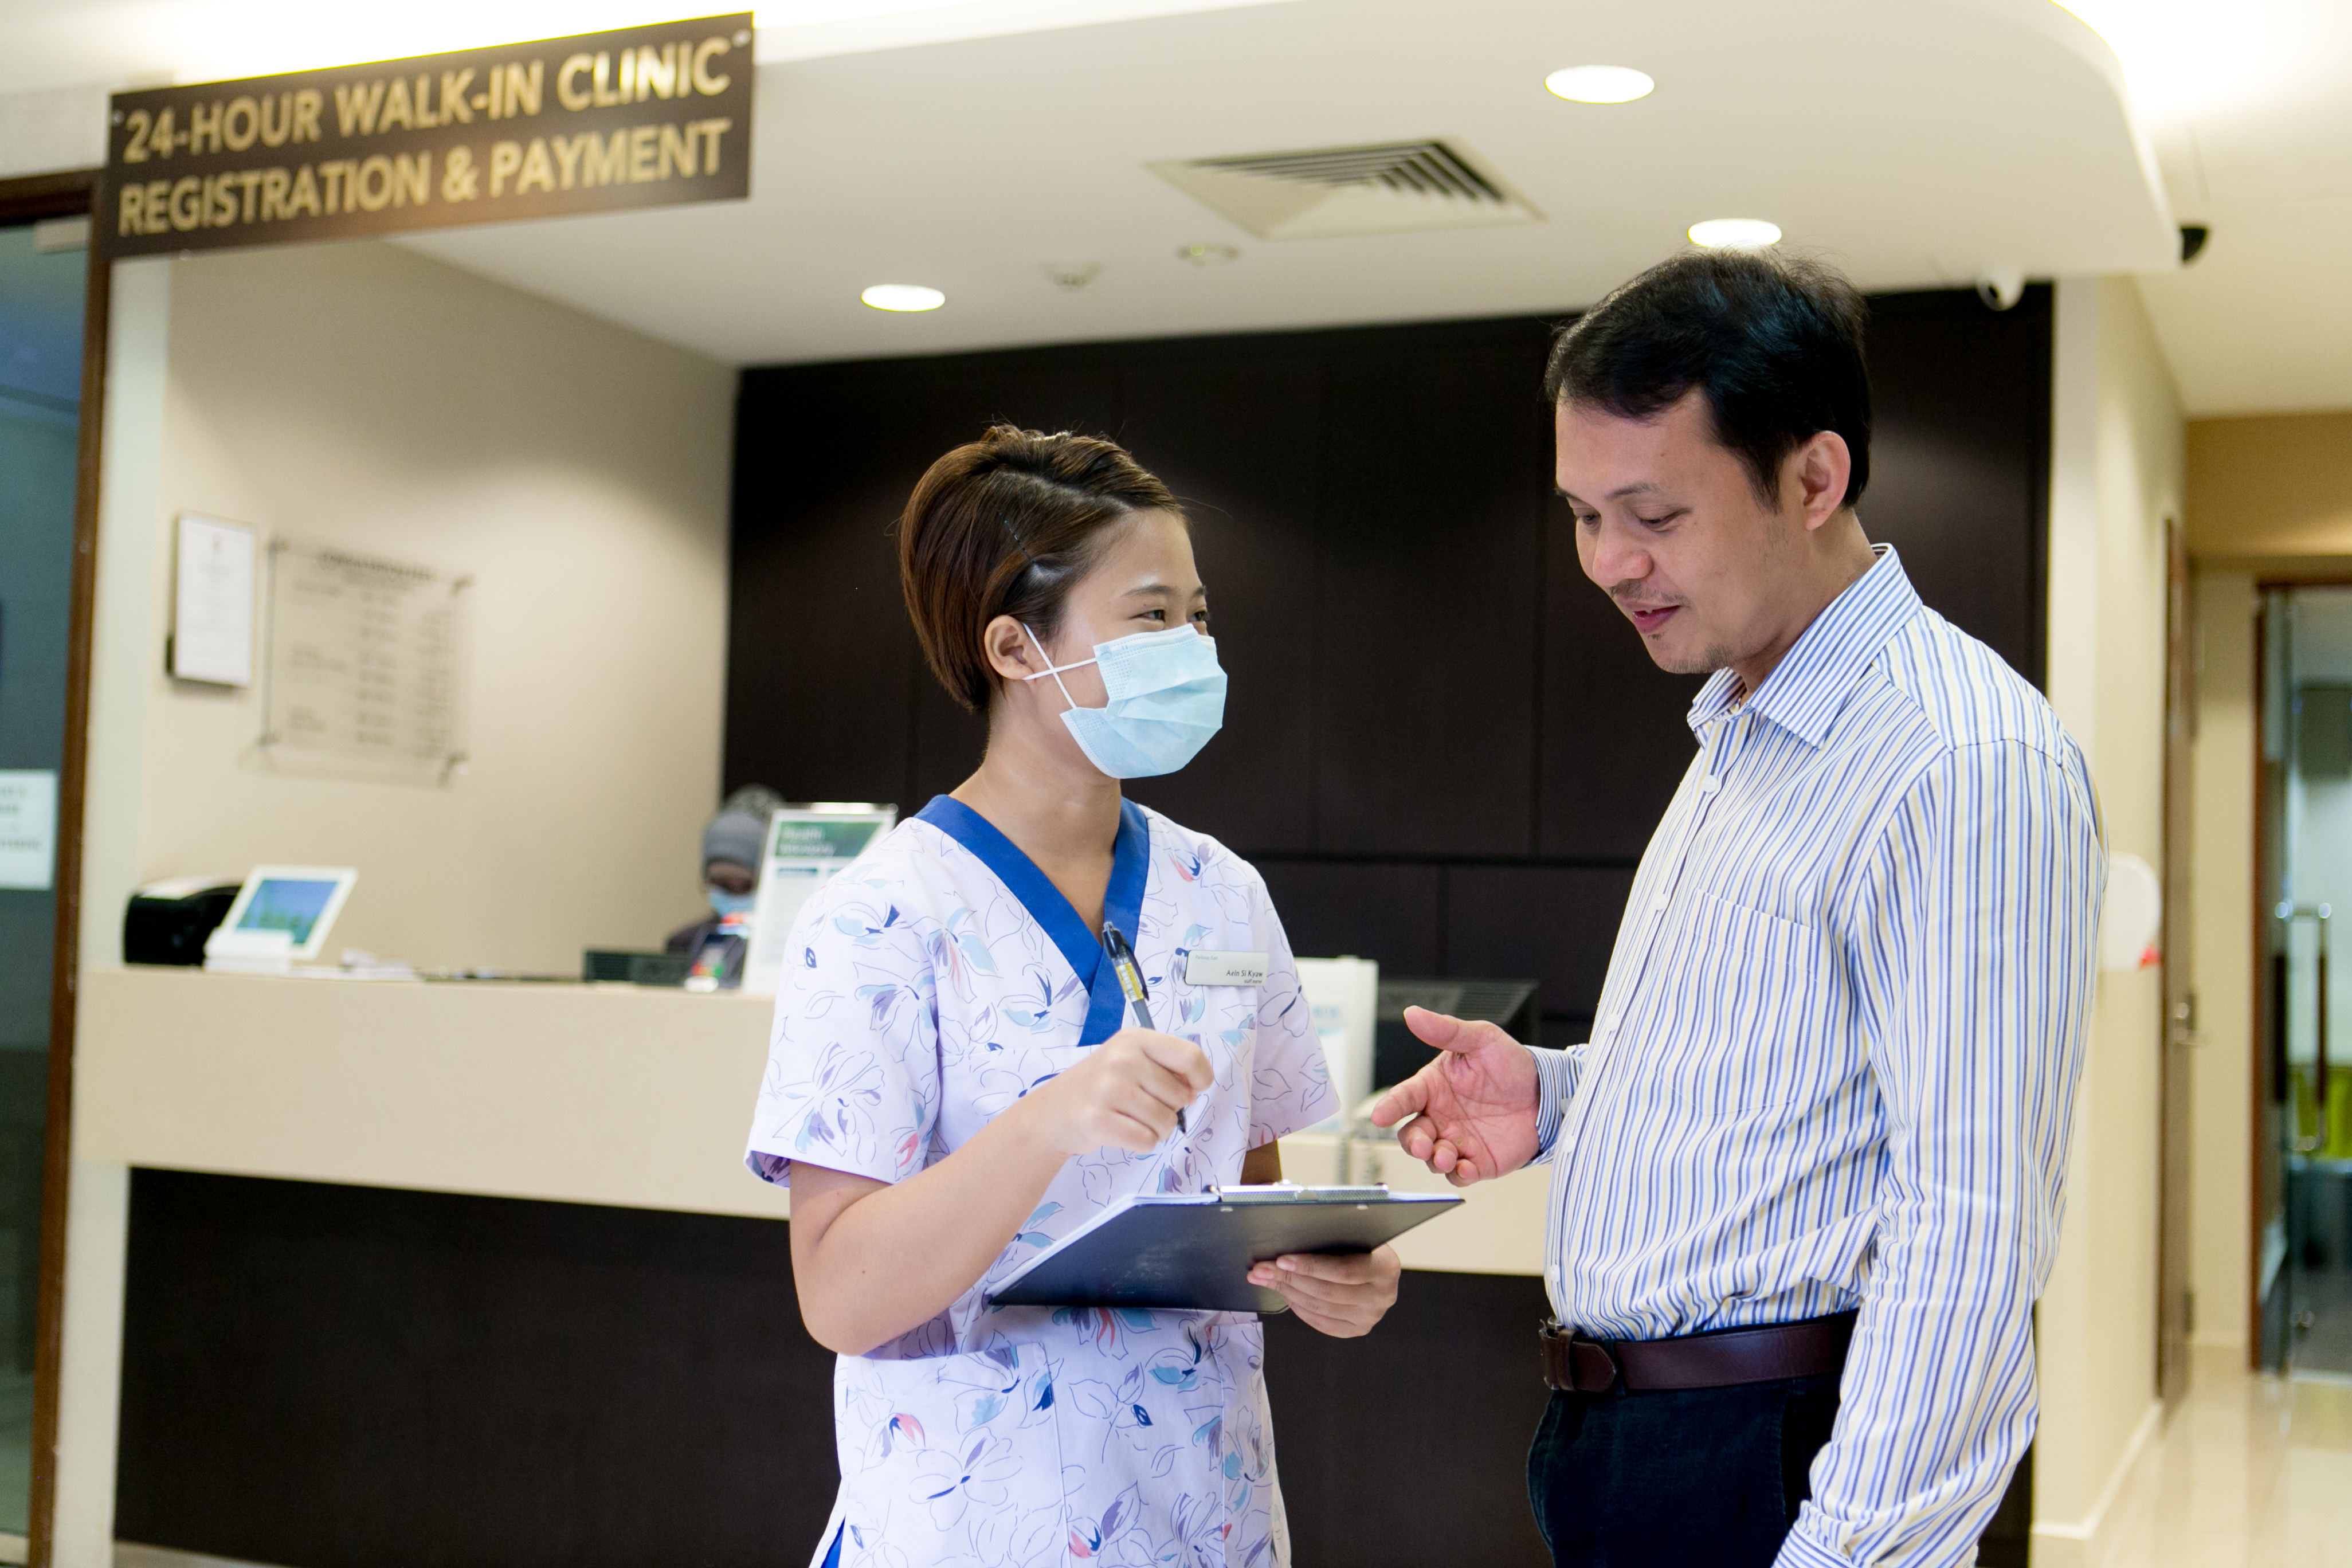 Accident and Emergency 24-hour clinic east of Singapore